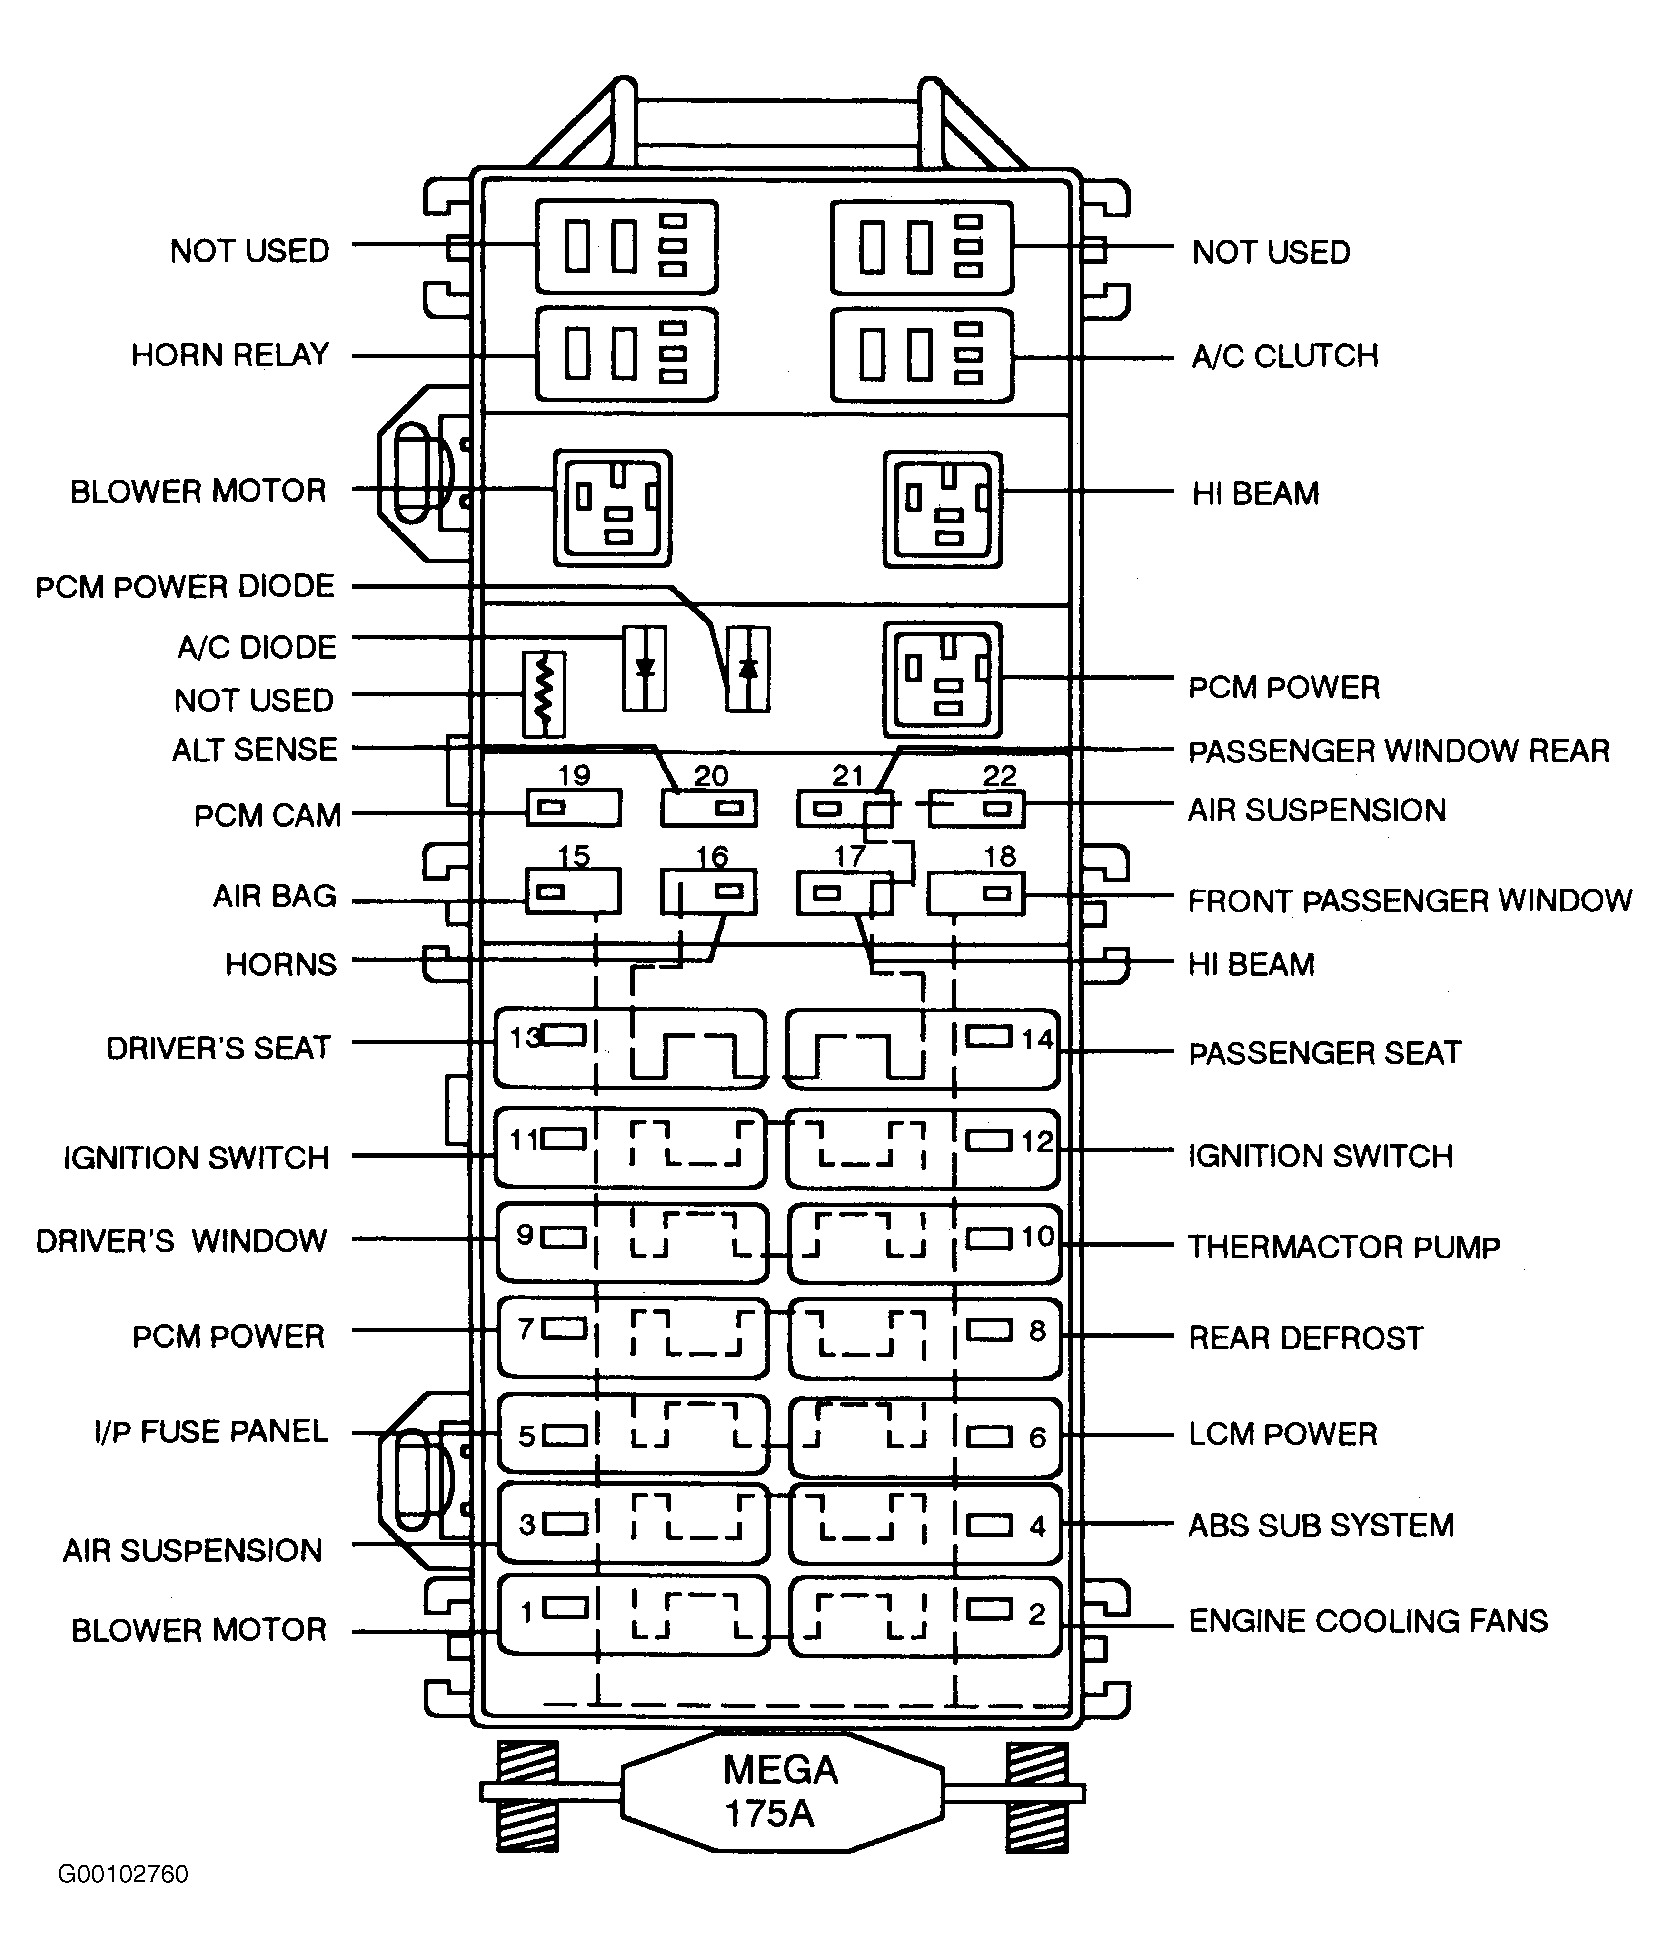 2000 explorer eddie bauer fuse box diagram